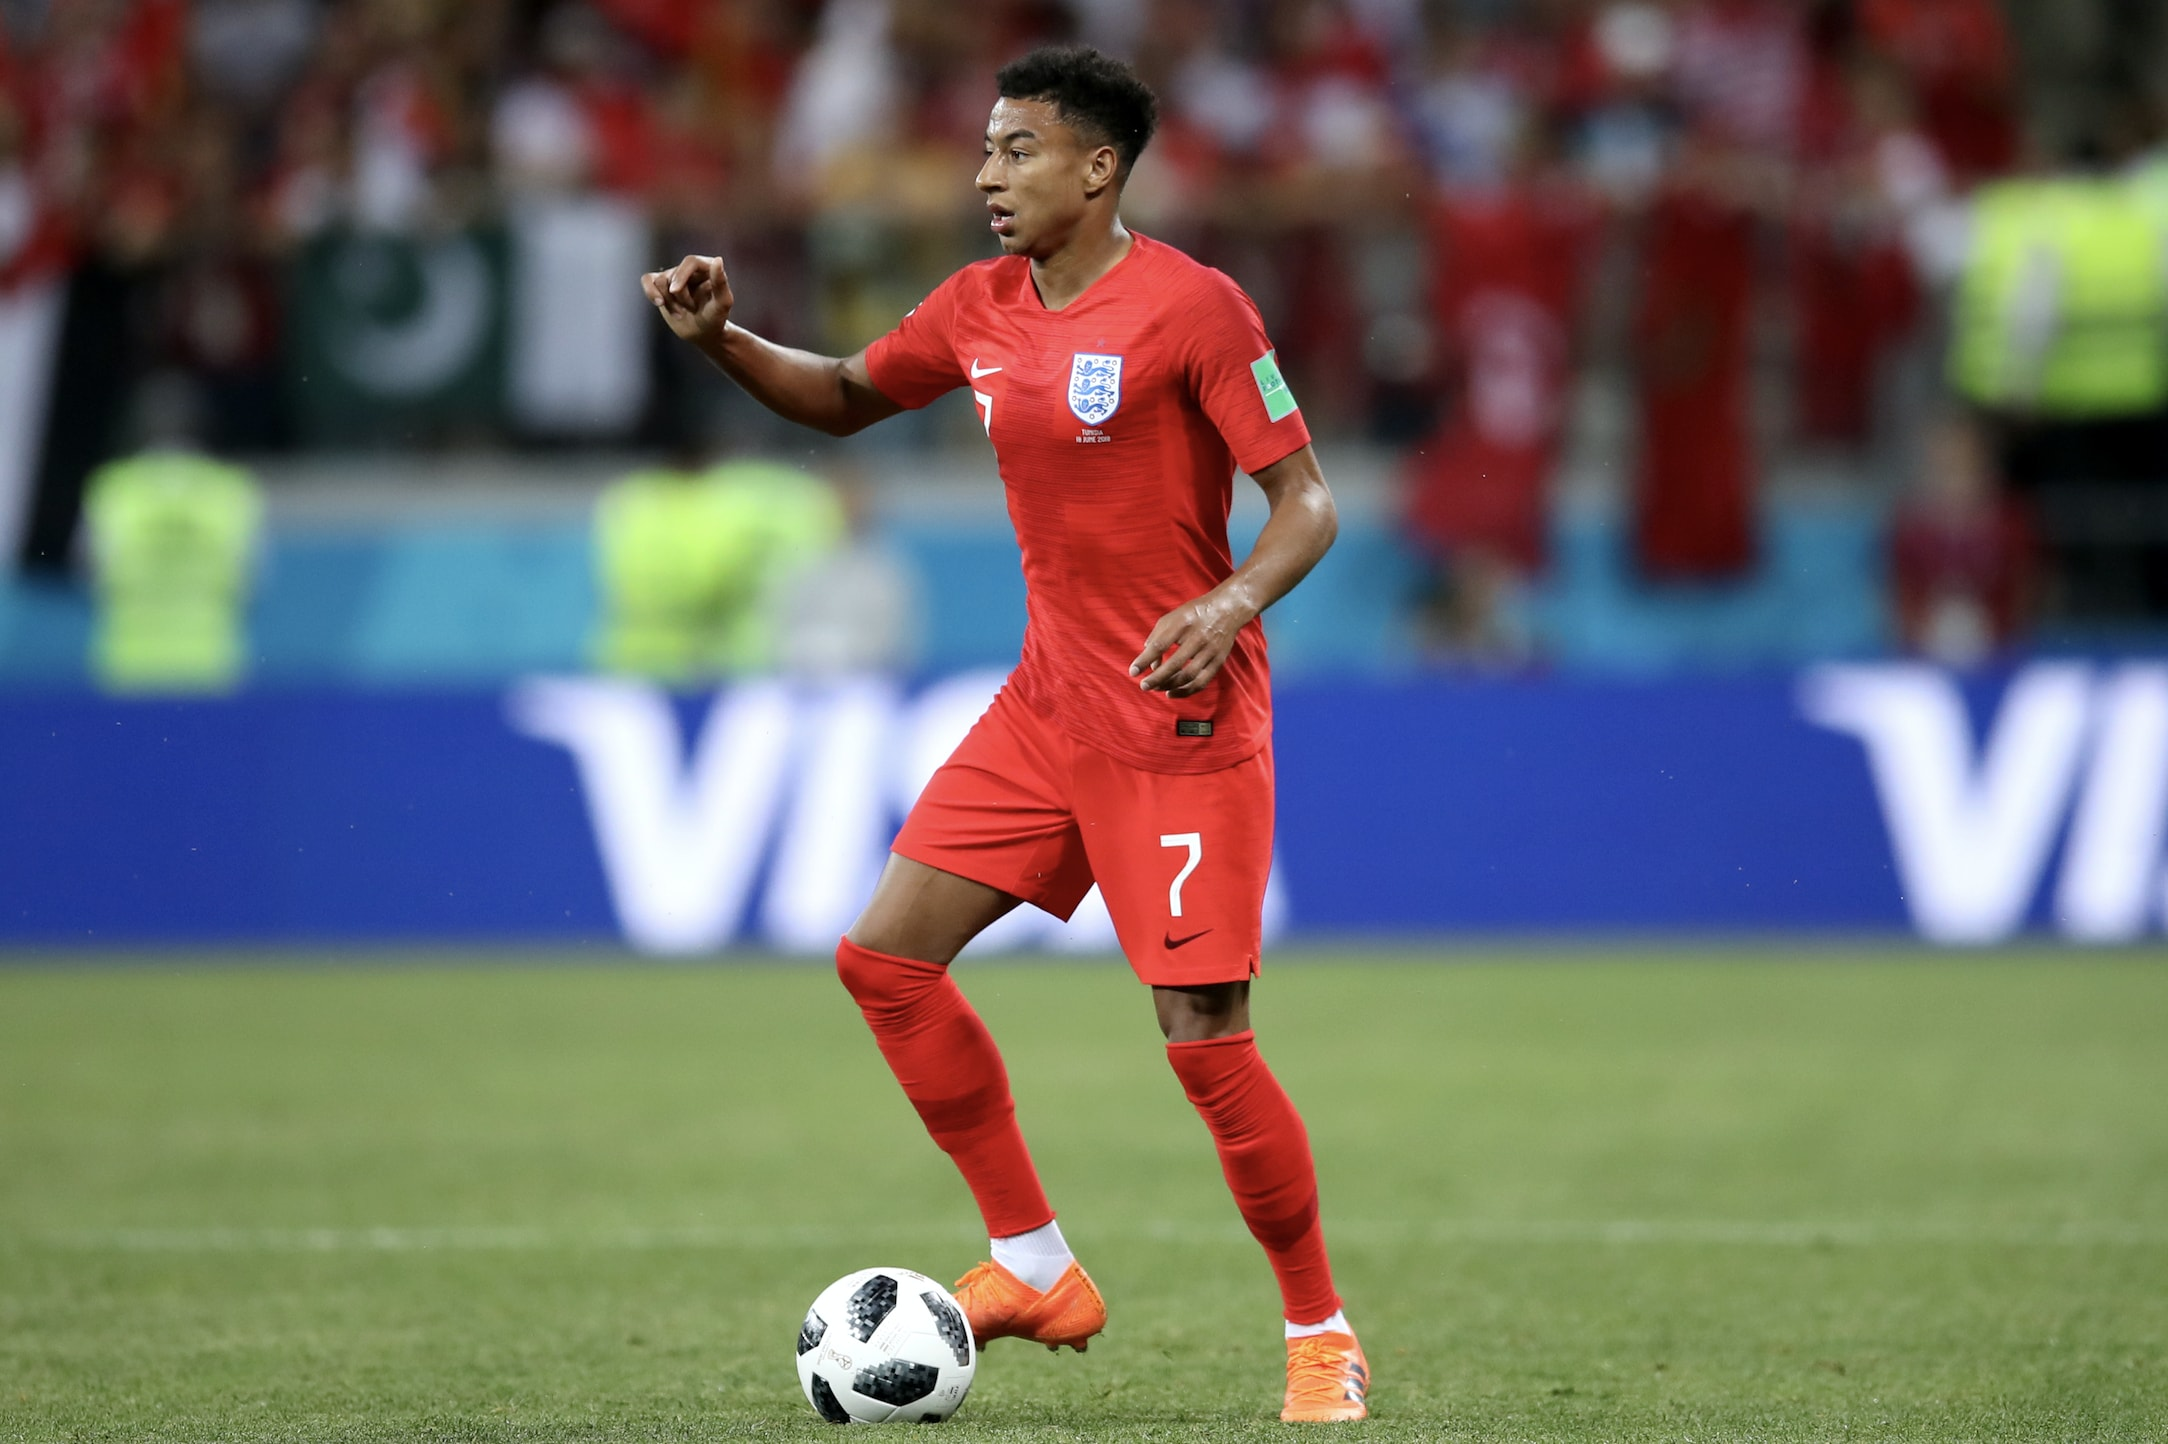 Lingard, Young & Rashford Watch: Red Trio Help England Win